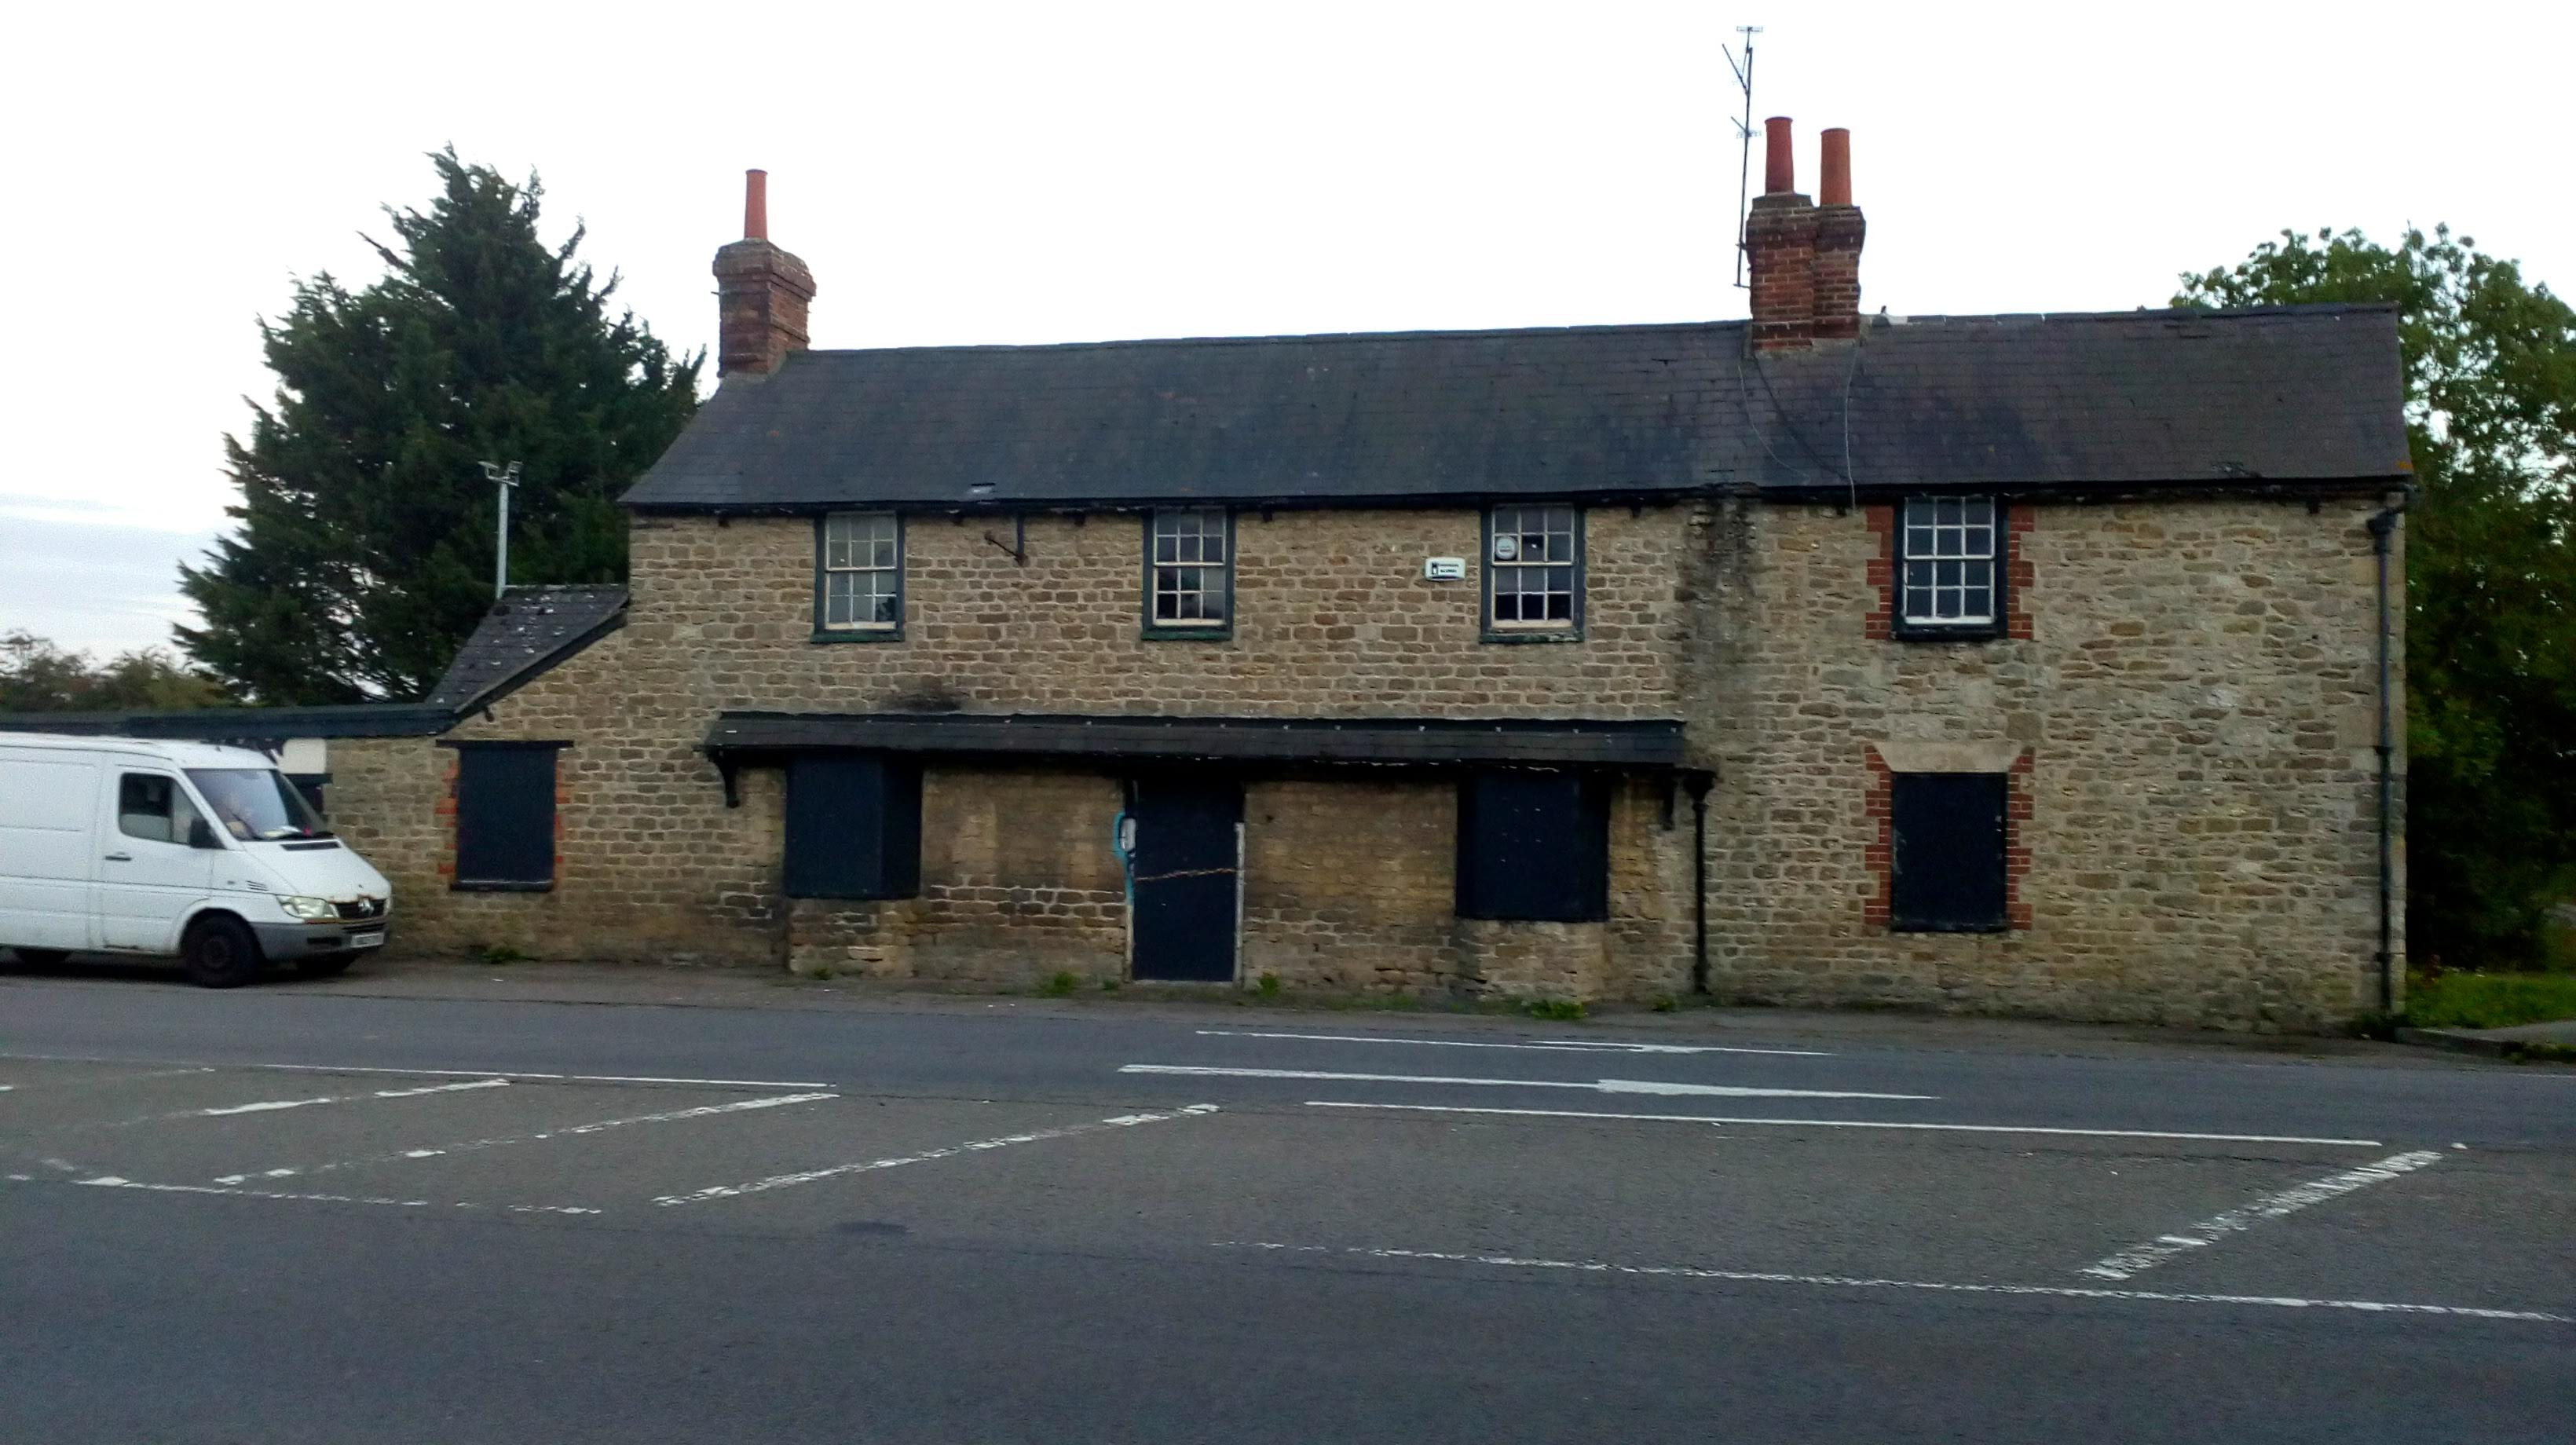 photo showing the pub from the front